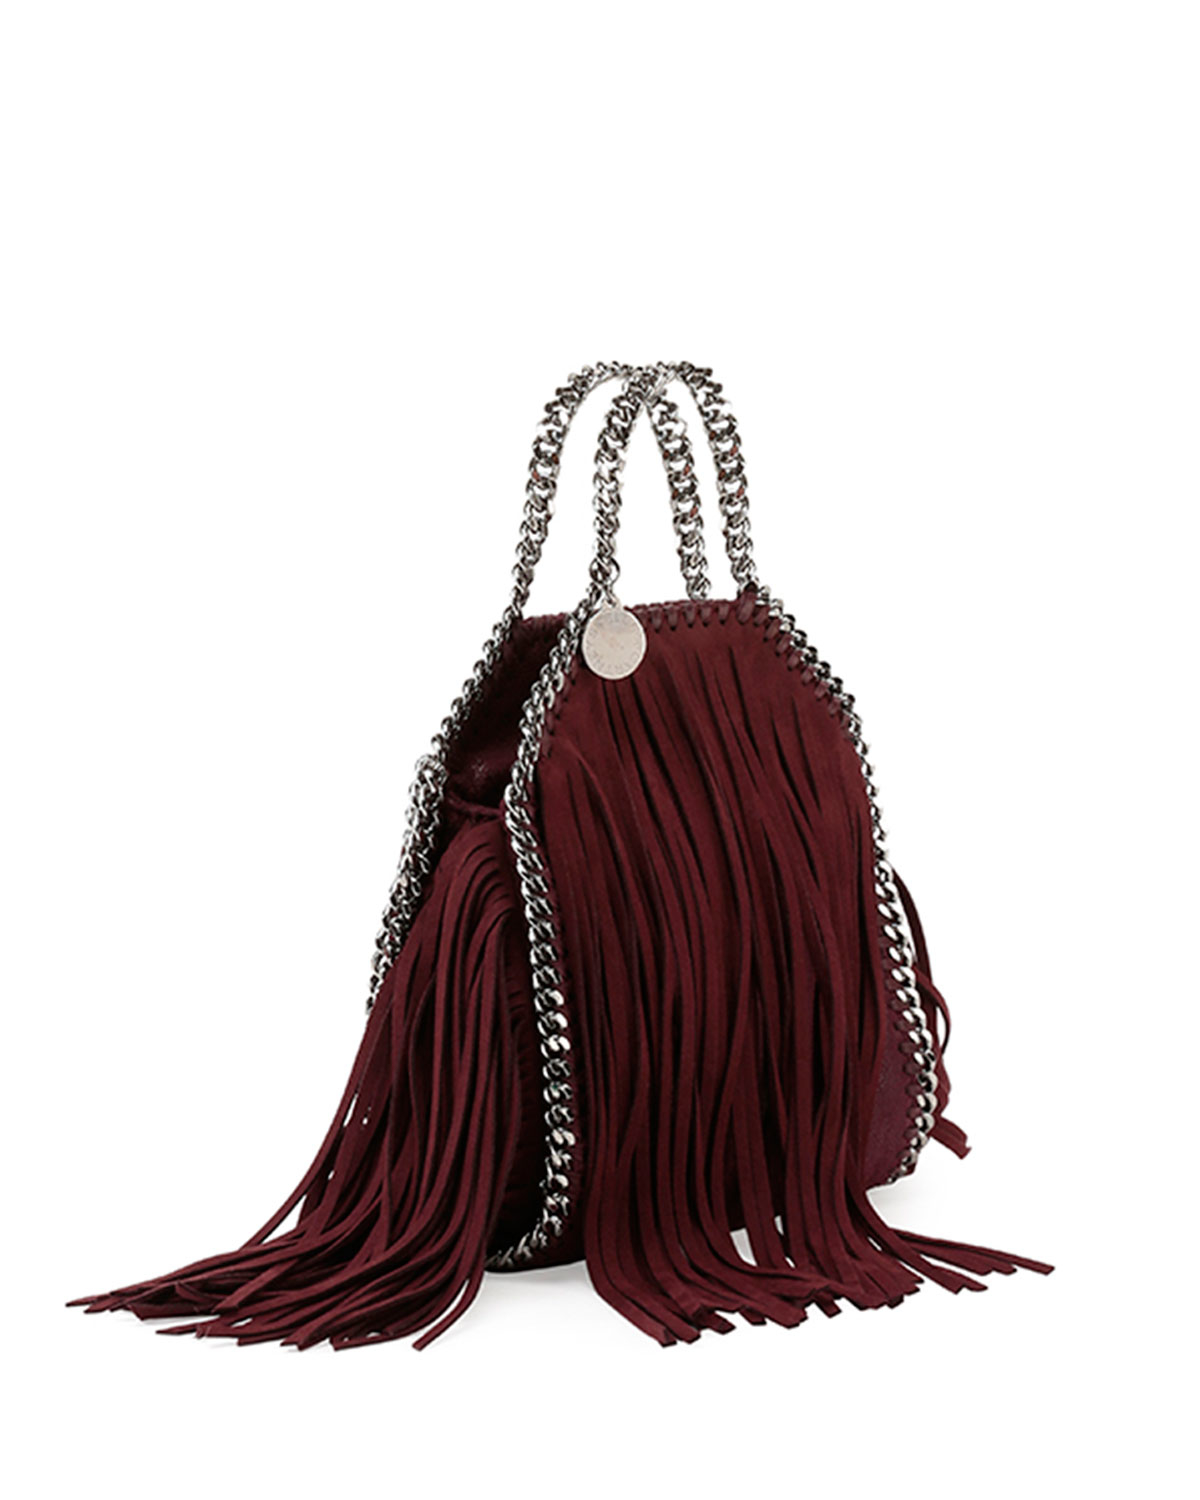 15f780852c05 Lyst - Stella McCartney Fringed Shaggy Deer Mini Tote Bag in Purple